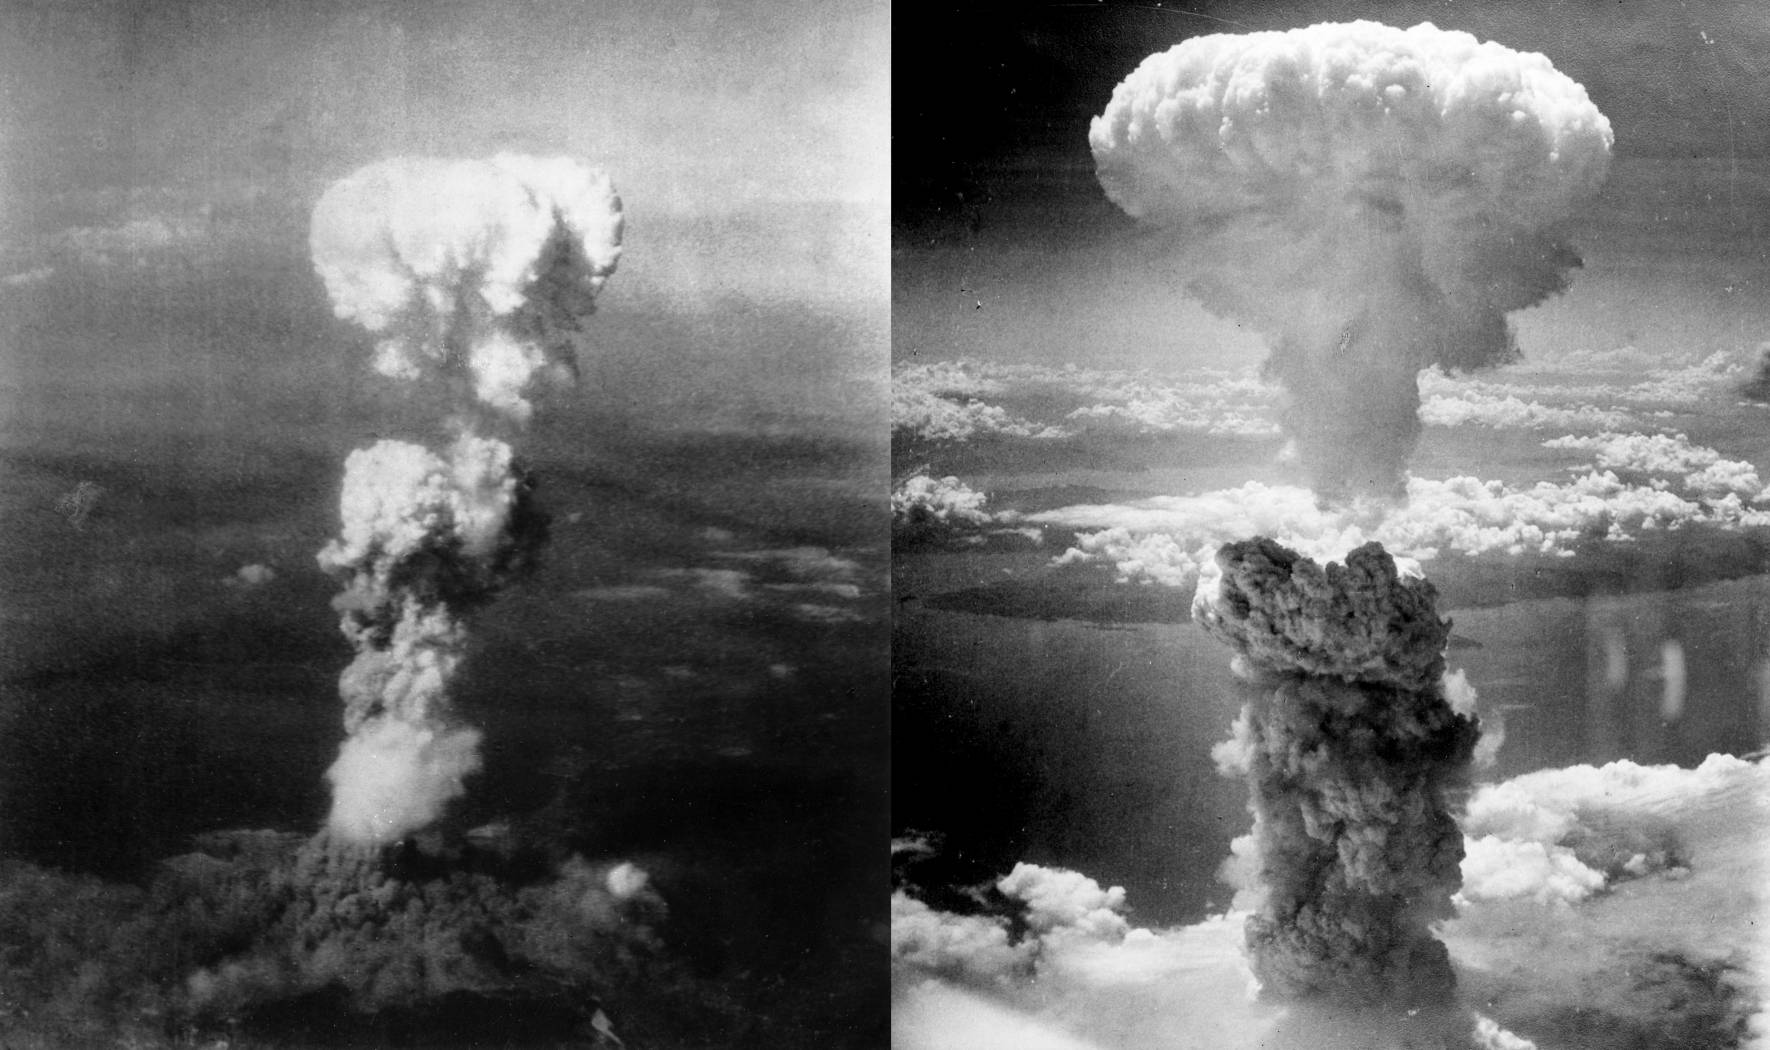 Hiroshima's haunting shadows: The atomic blasts that left scars on humanity 4